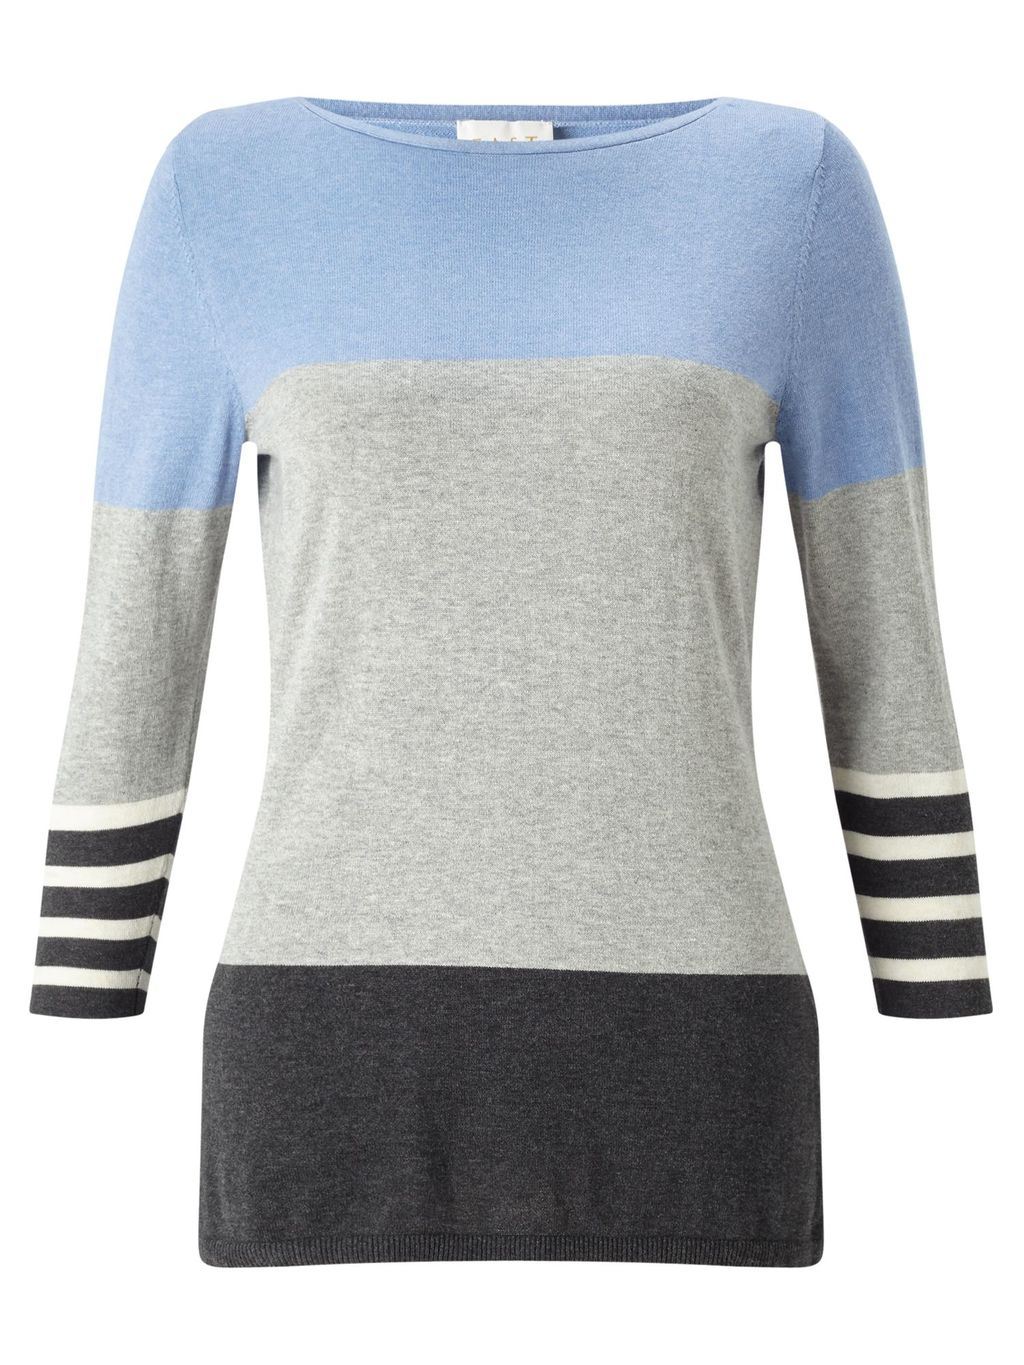 Colourblock Knit Top, Multi Coloured - pattern: horizontal stripes; predominant colour: pale blue; secondary colour: light grey; occasions: casual; length: standard; style: top; fibres: cotton - 100%; fit: body skimming; neckline: crew; sleeve length: 3/4 length; sleeve style: standard; texture group: knits/crochet; pattern type: knitted - fine stitch; multicoloured: multicoloured; season: a/w 2016; wardrobe: highlight